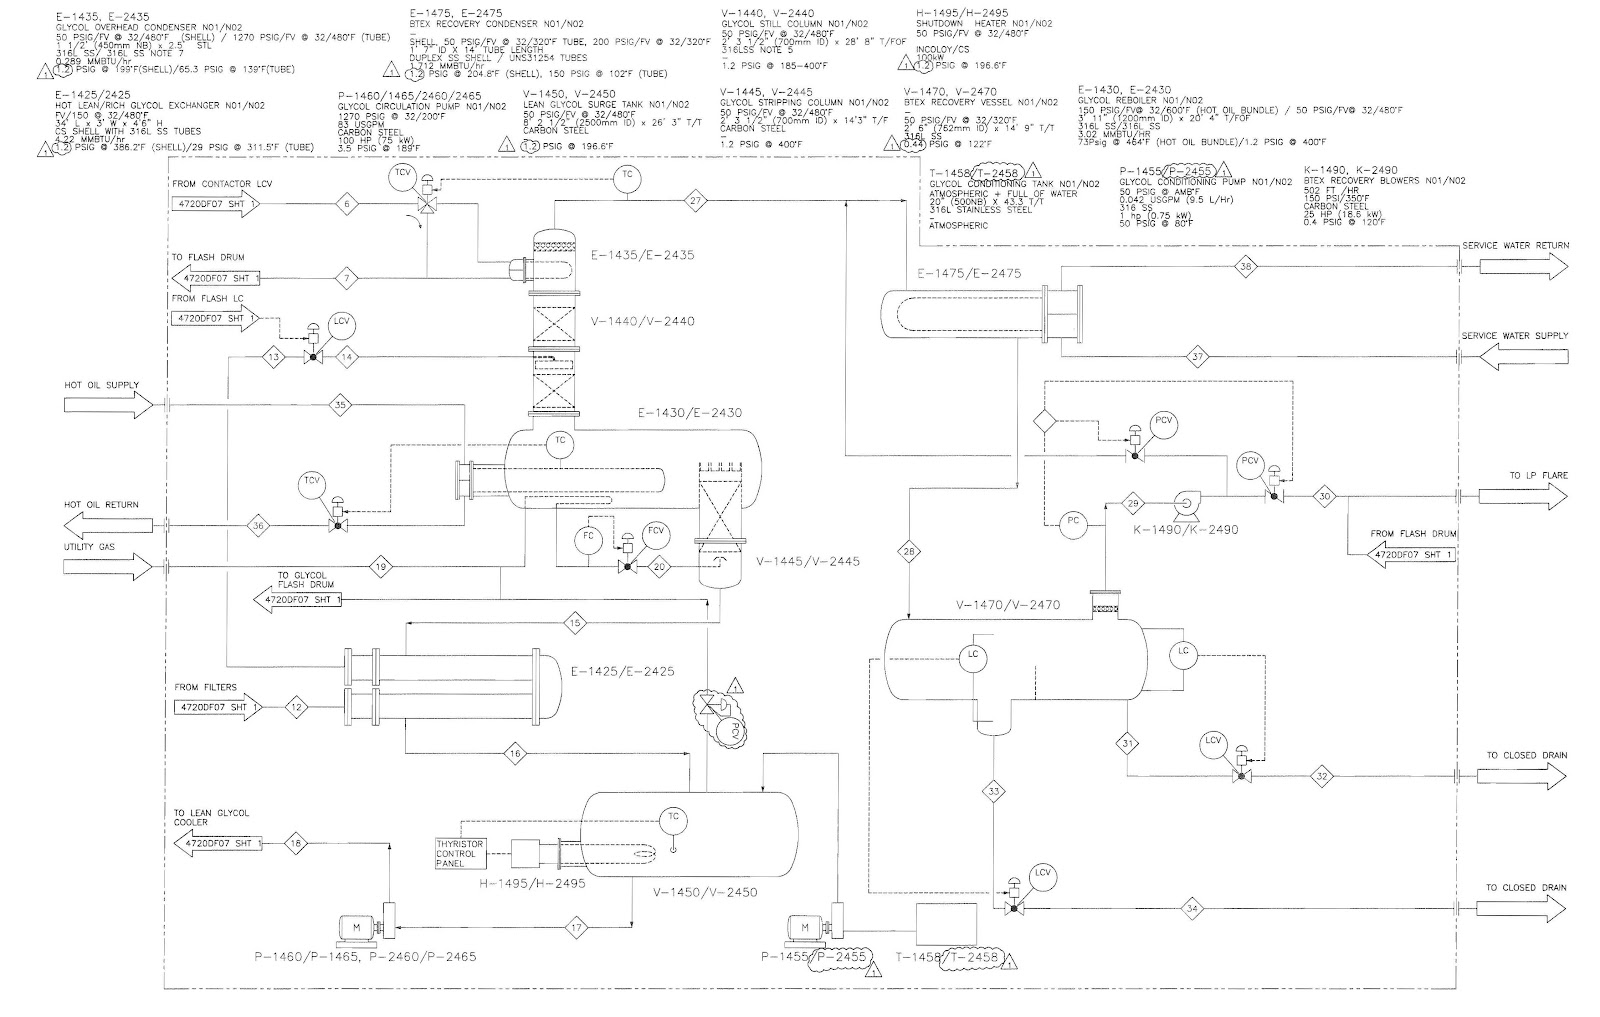 Glycol System Diagram E likewise  as well Px Tray Distillation Tower En Svg likewise C F likewise Fox Texaco Flare. on glycol system diagram